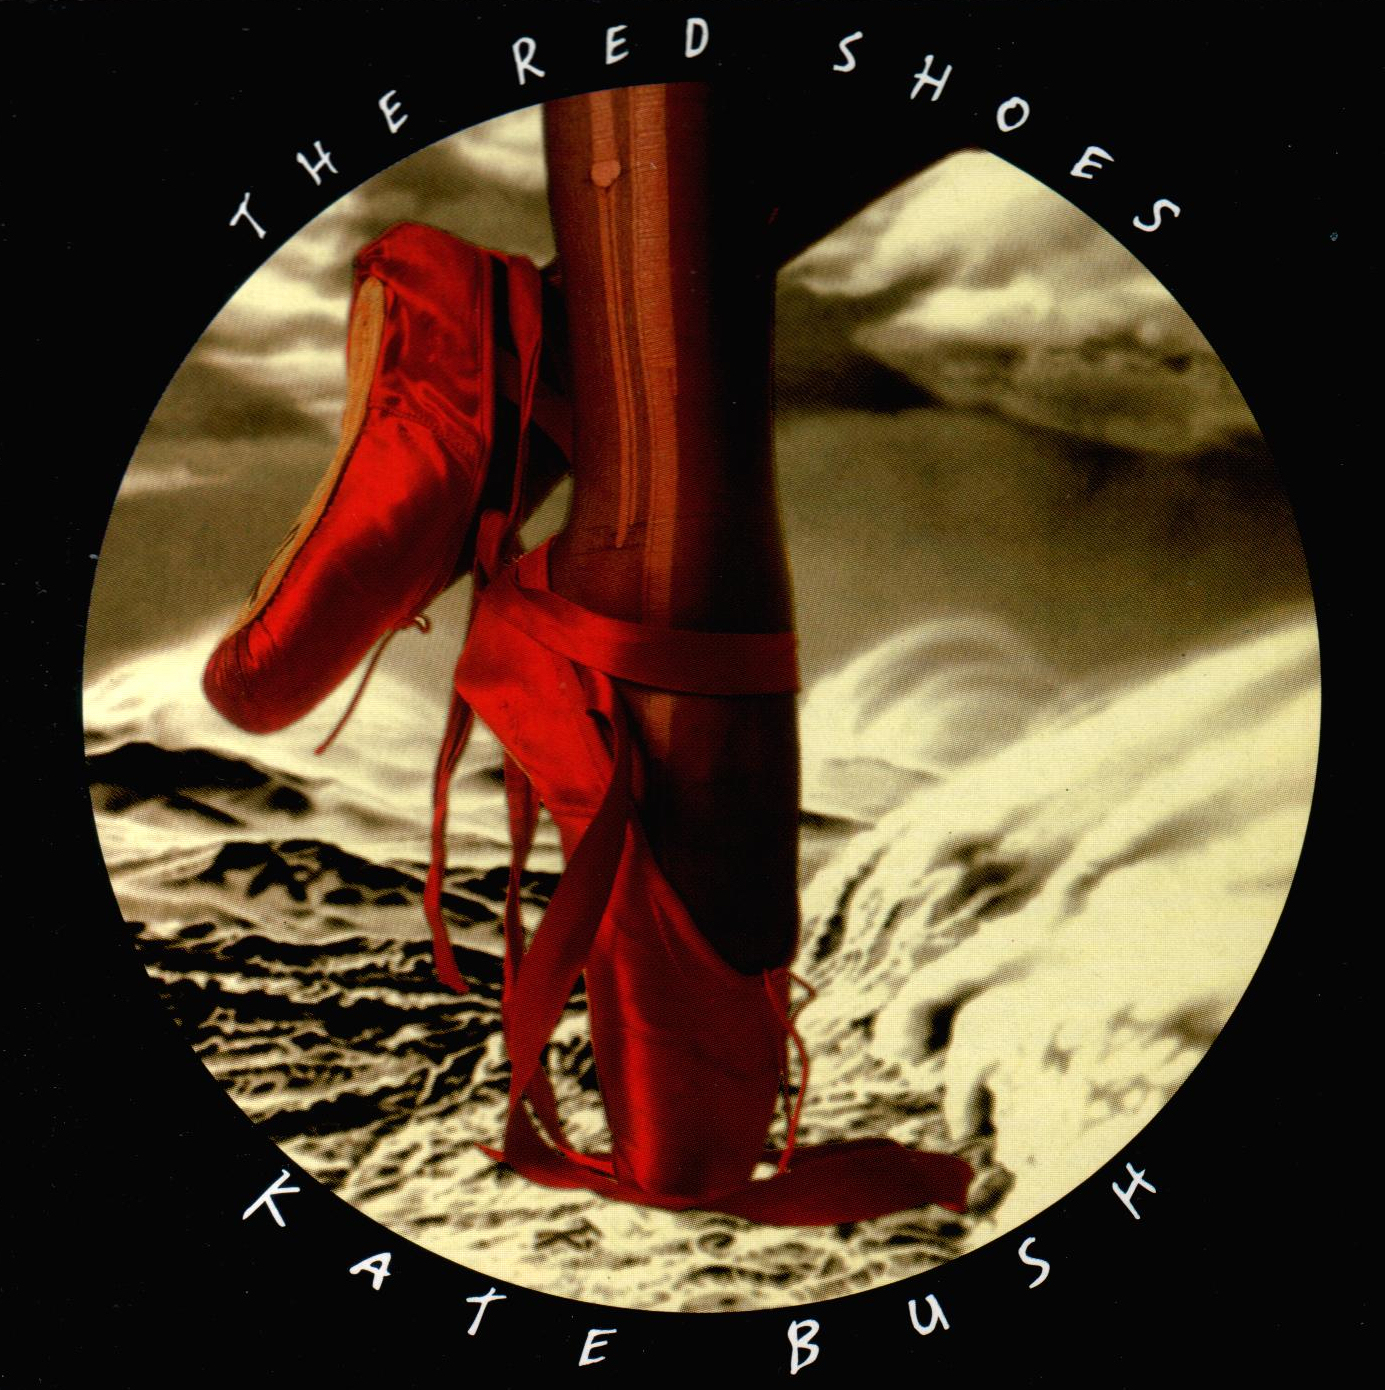 The Red Shoes Kate Bush Pictures